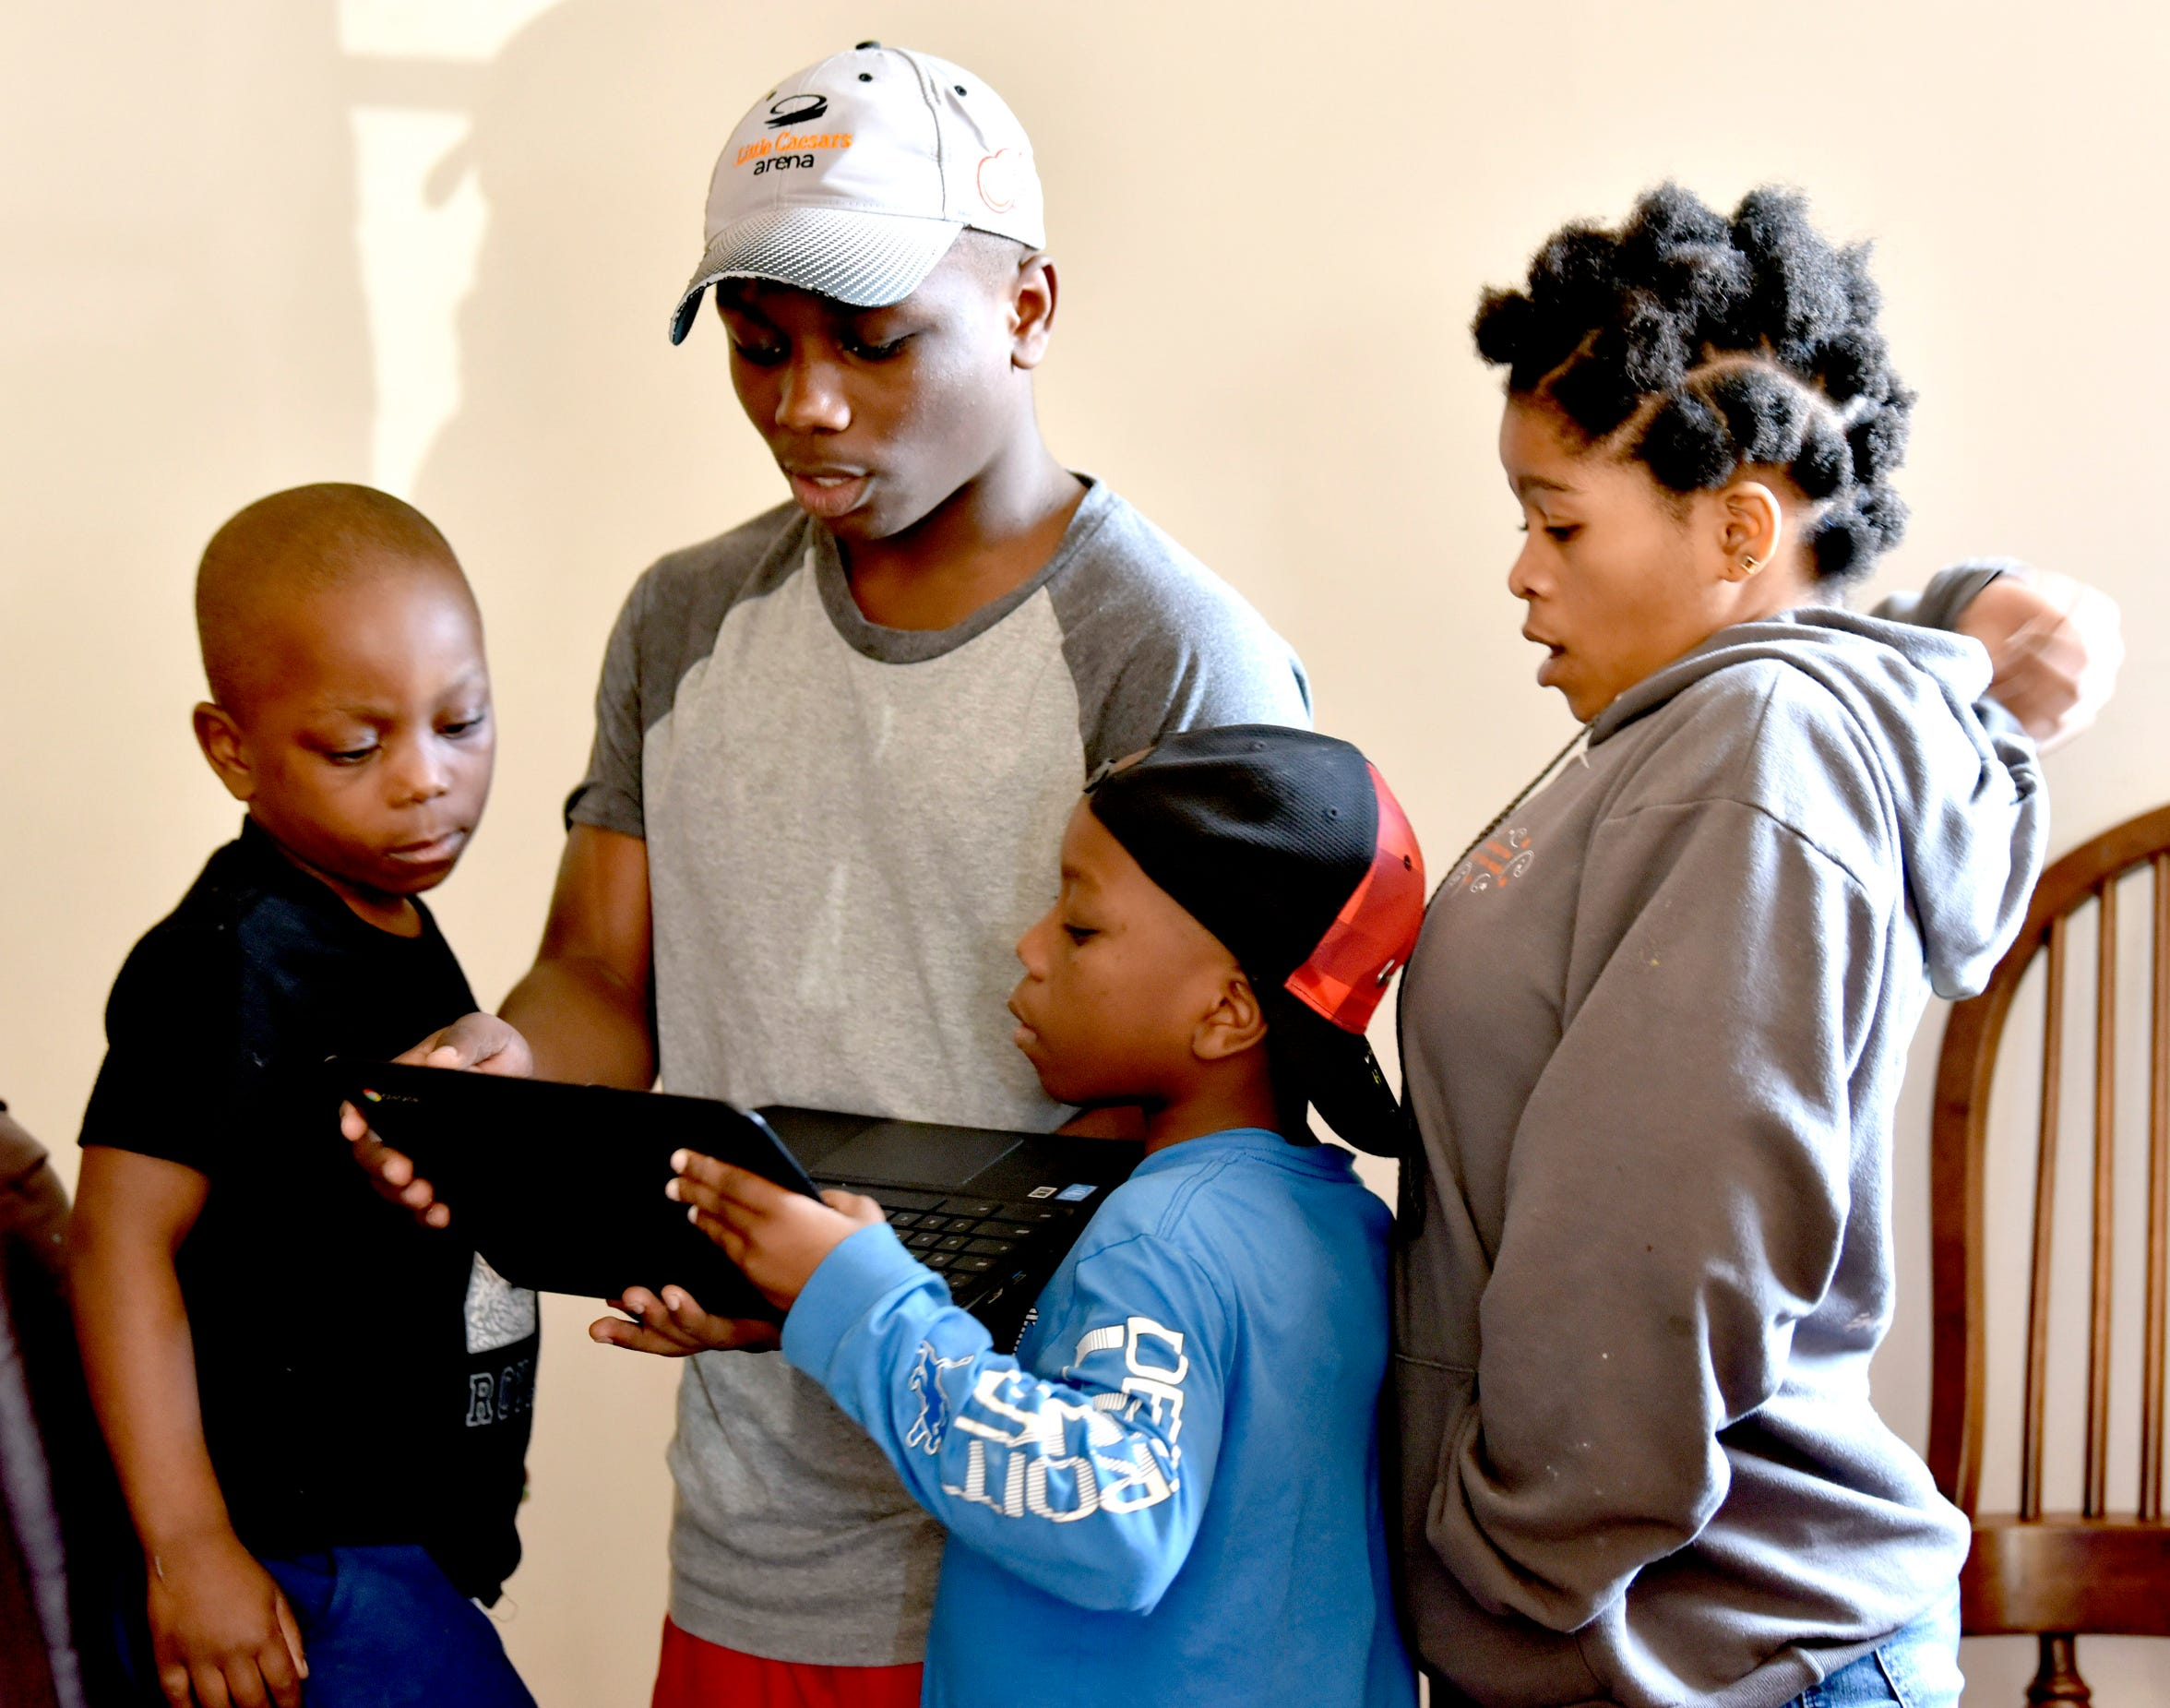 (from left) Siblings Gido, 6, Msimbi, 16, Msoshi, 9, and Balongelwa, 19, look at the family computer. The Amani family lives in Warren now after spending 20 years in a refugee camp. Despite the few refugees resettling in Michigan, Congolese from the Dem. Rep. of Congo have been resettling in large numbers.